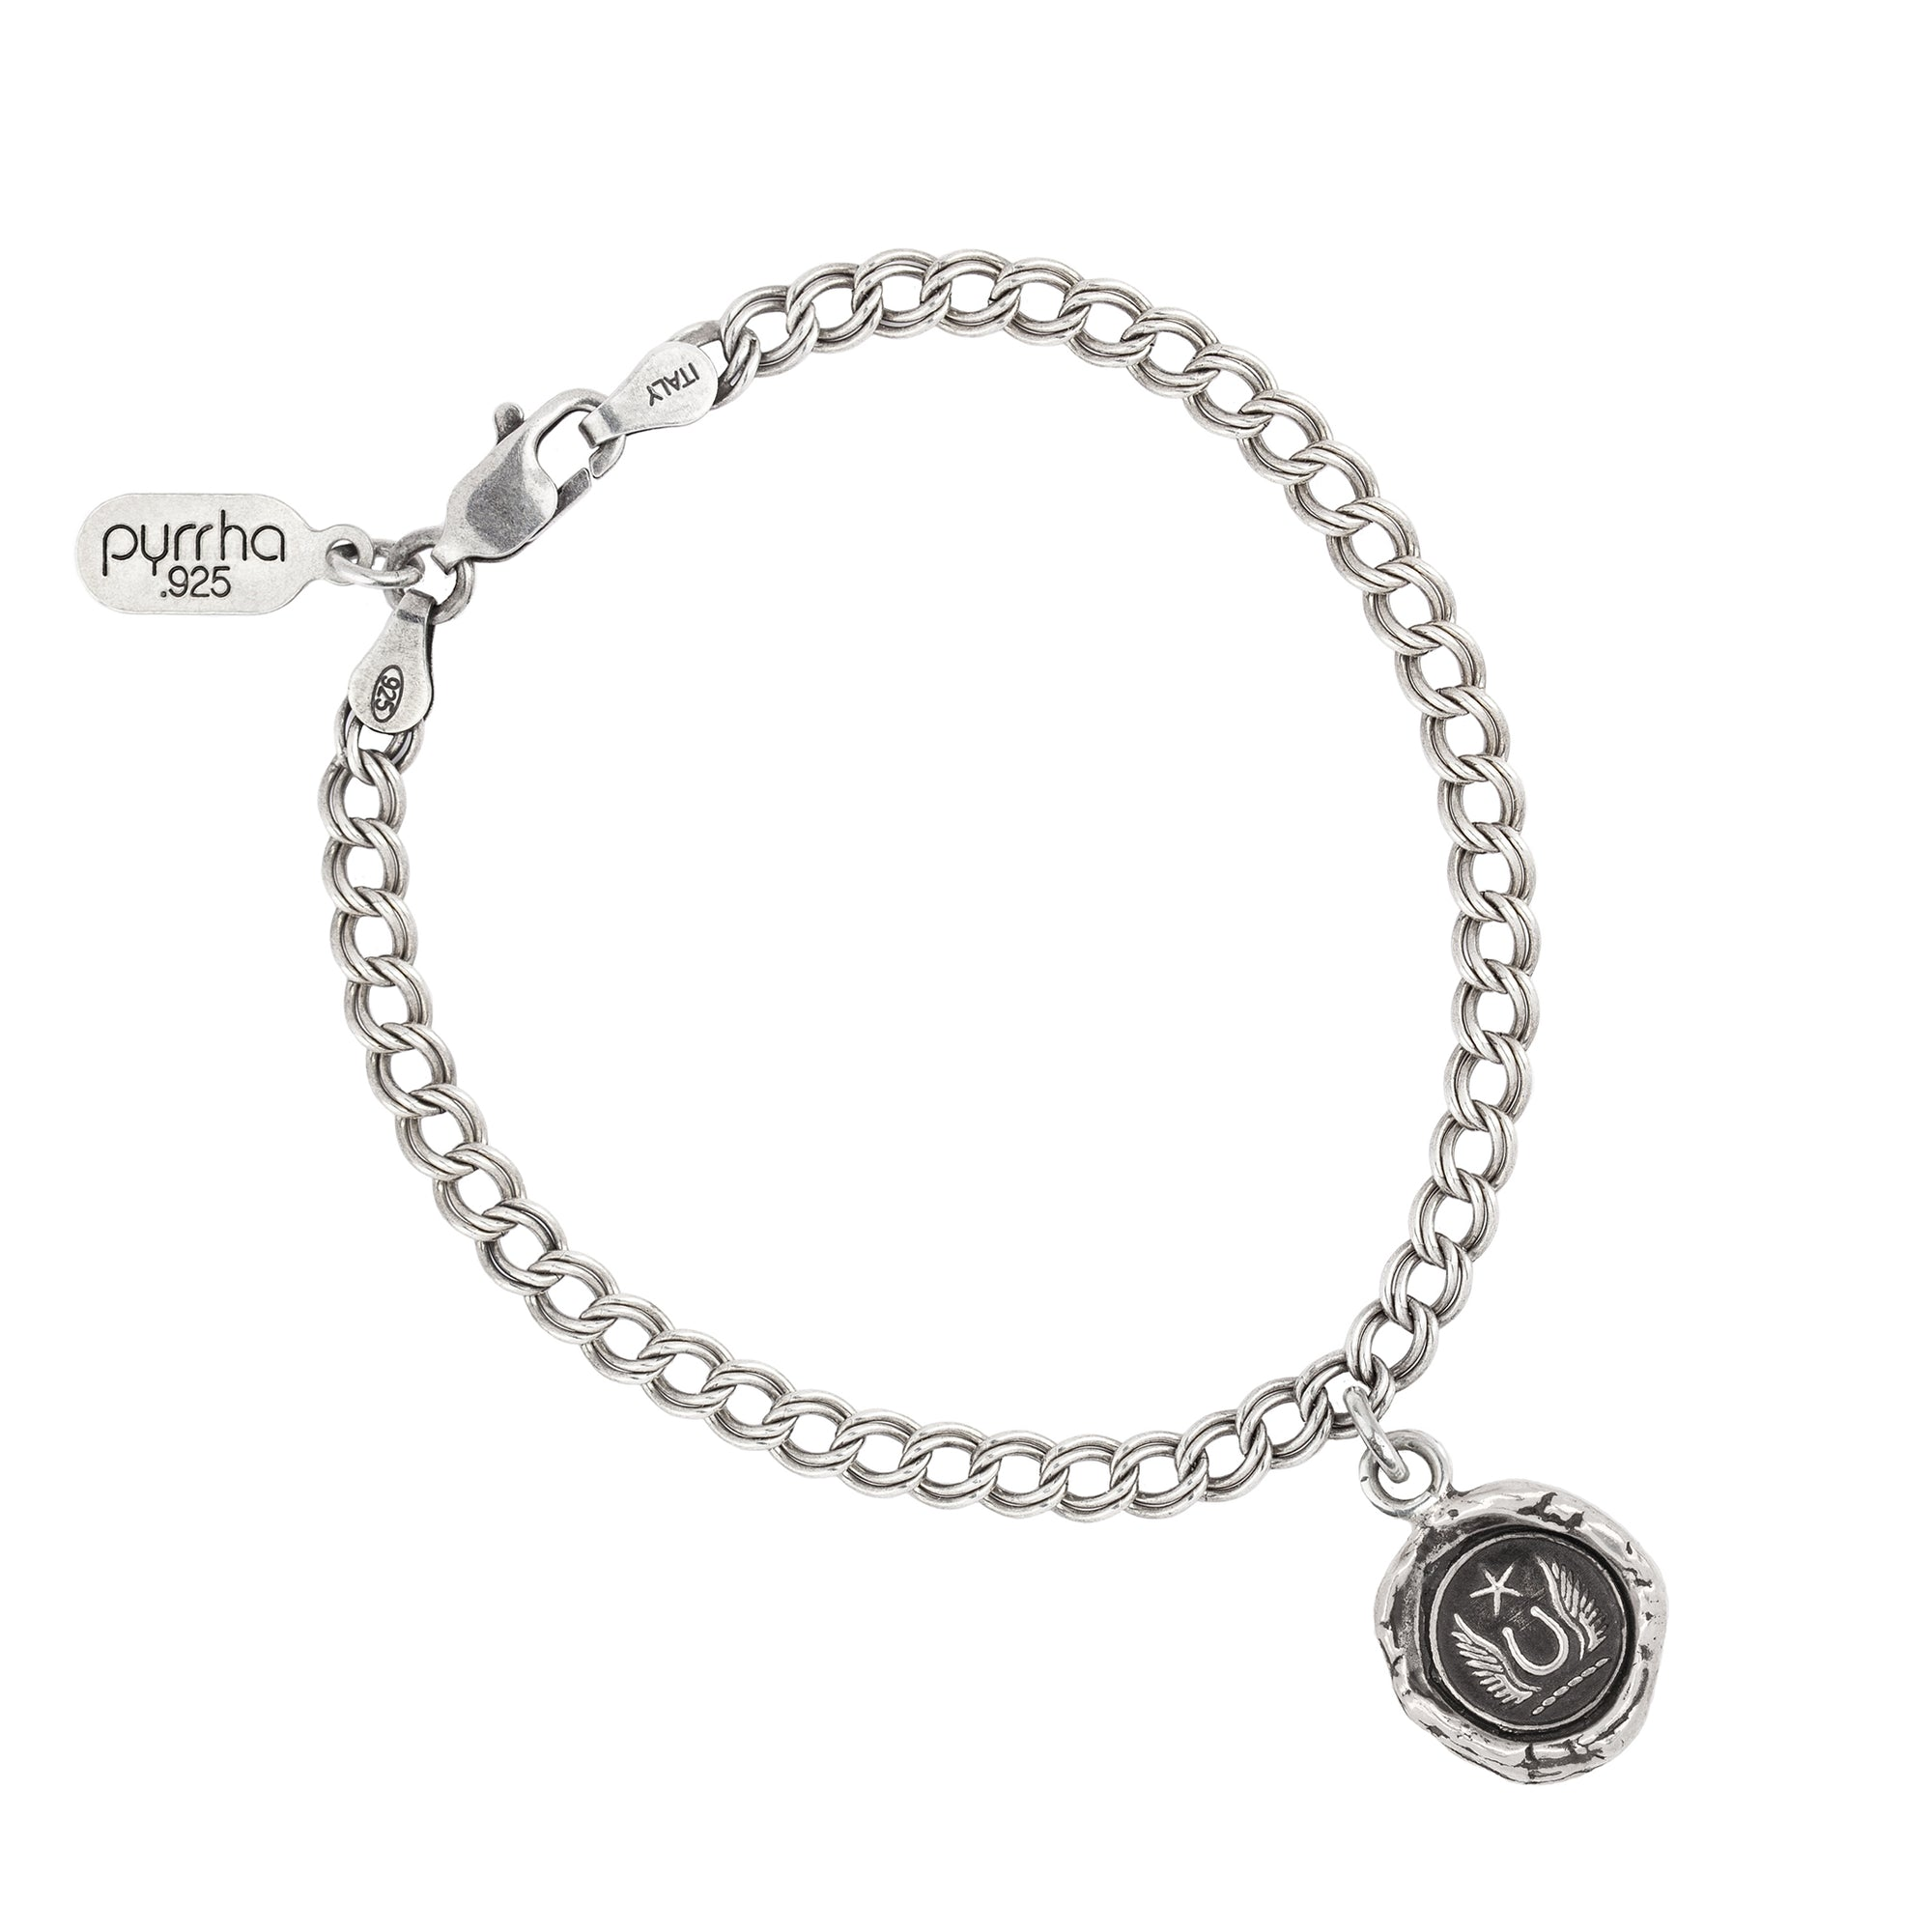 Pyrrha luck and protection talisman chain bracelet